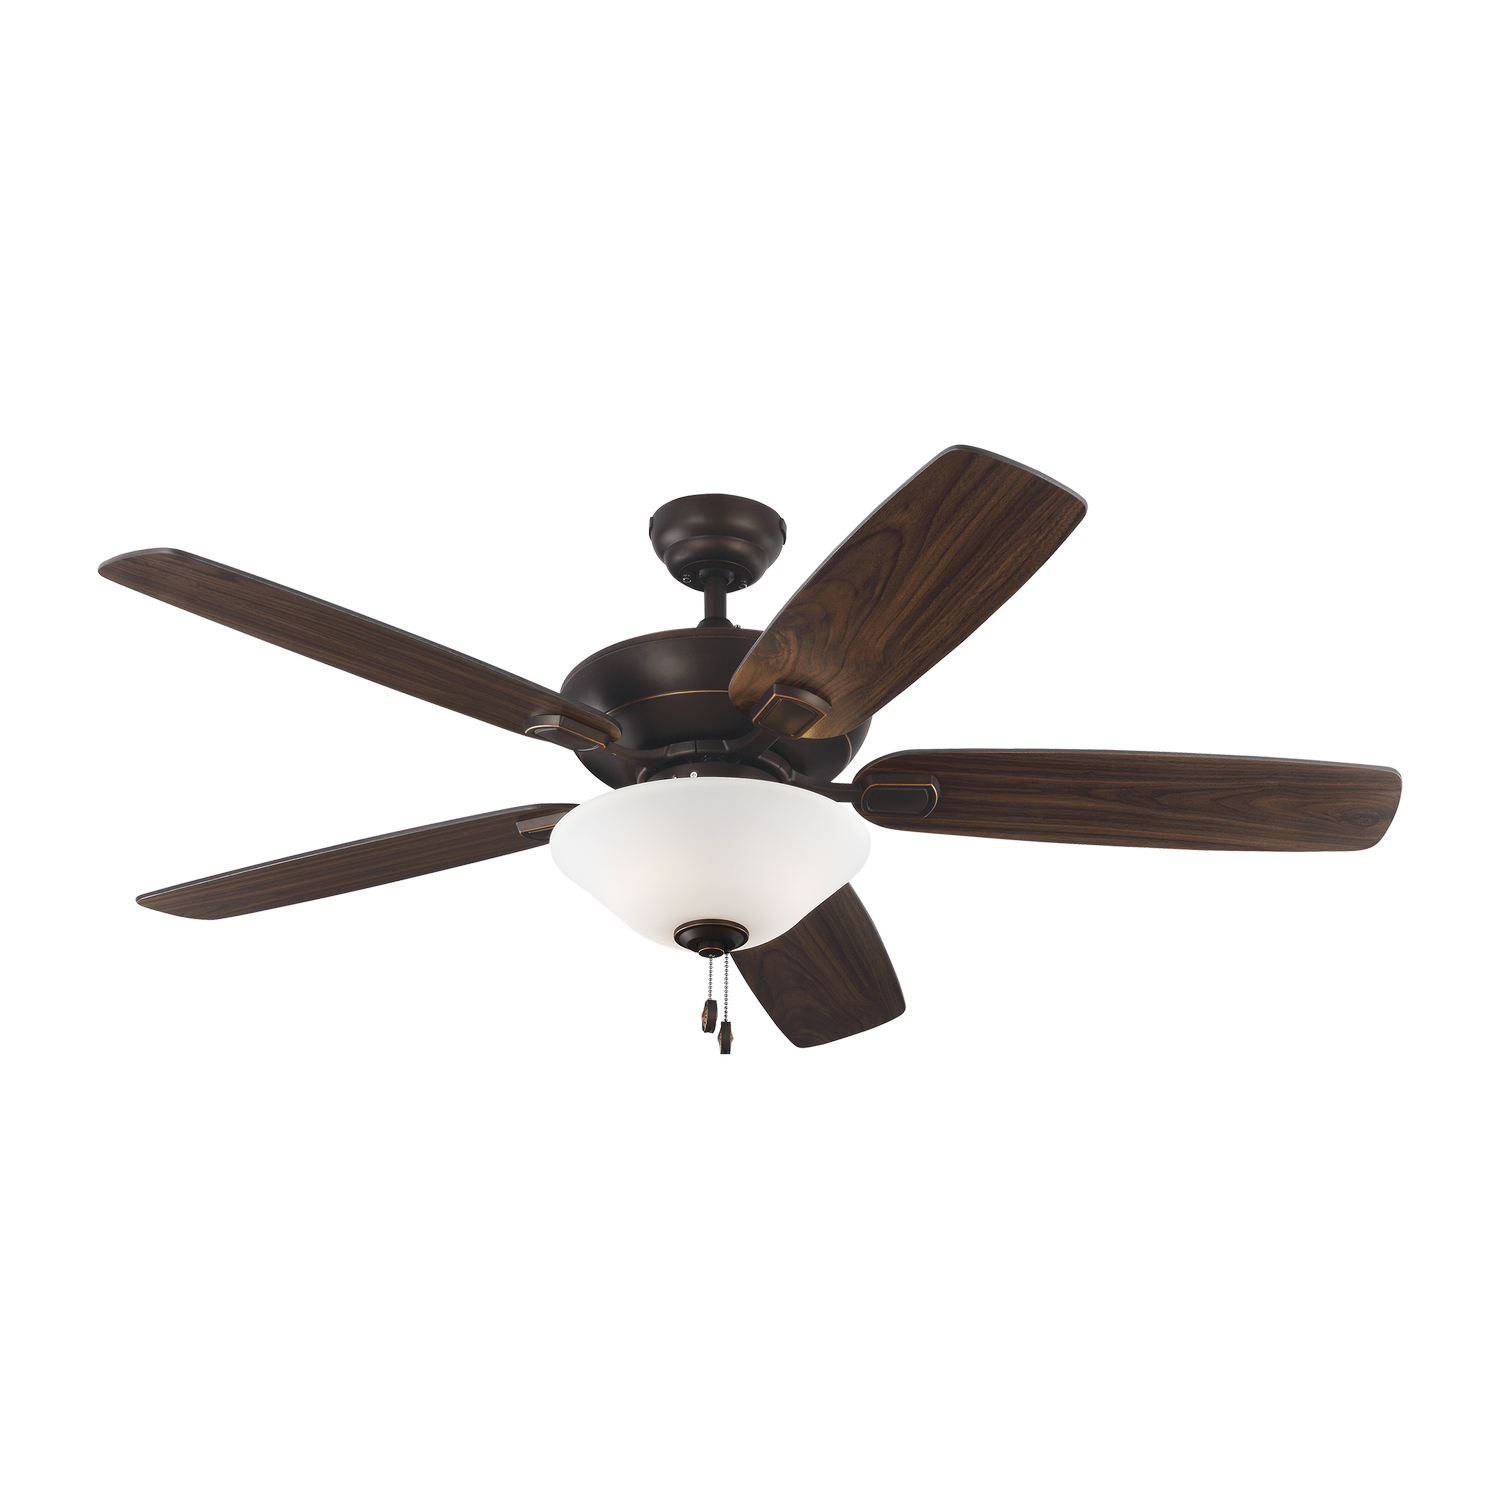 52 inchCeiling Fan from the Colony Max Plus collection by Monte Carlo 5COM52RBD